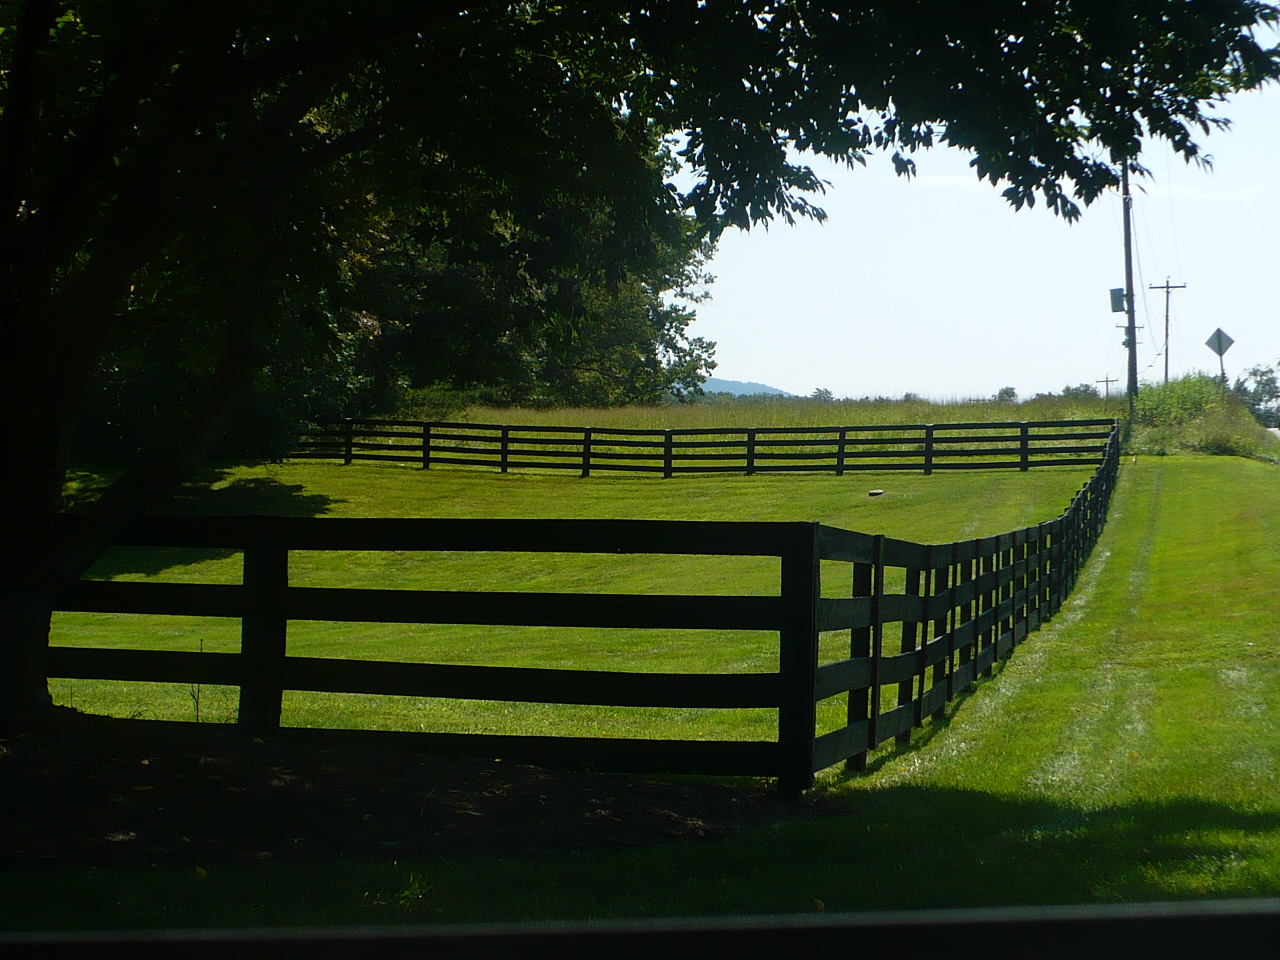 Local Fence Contractor in Loudoun County, VA